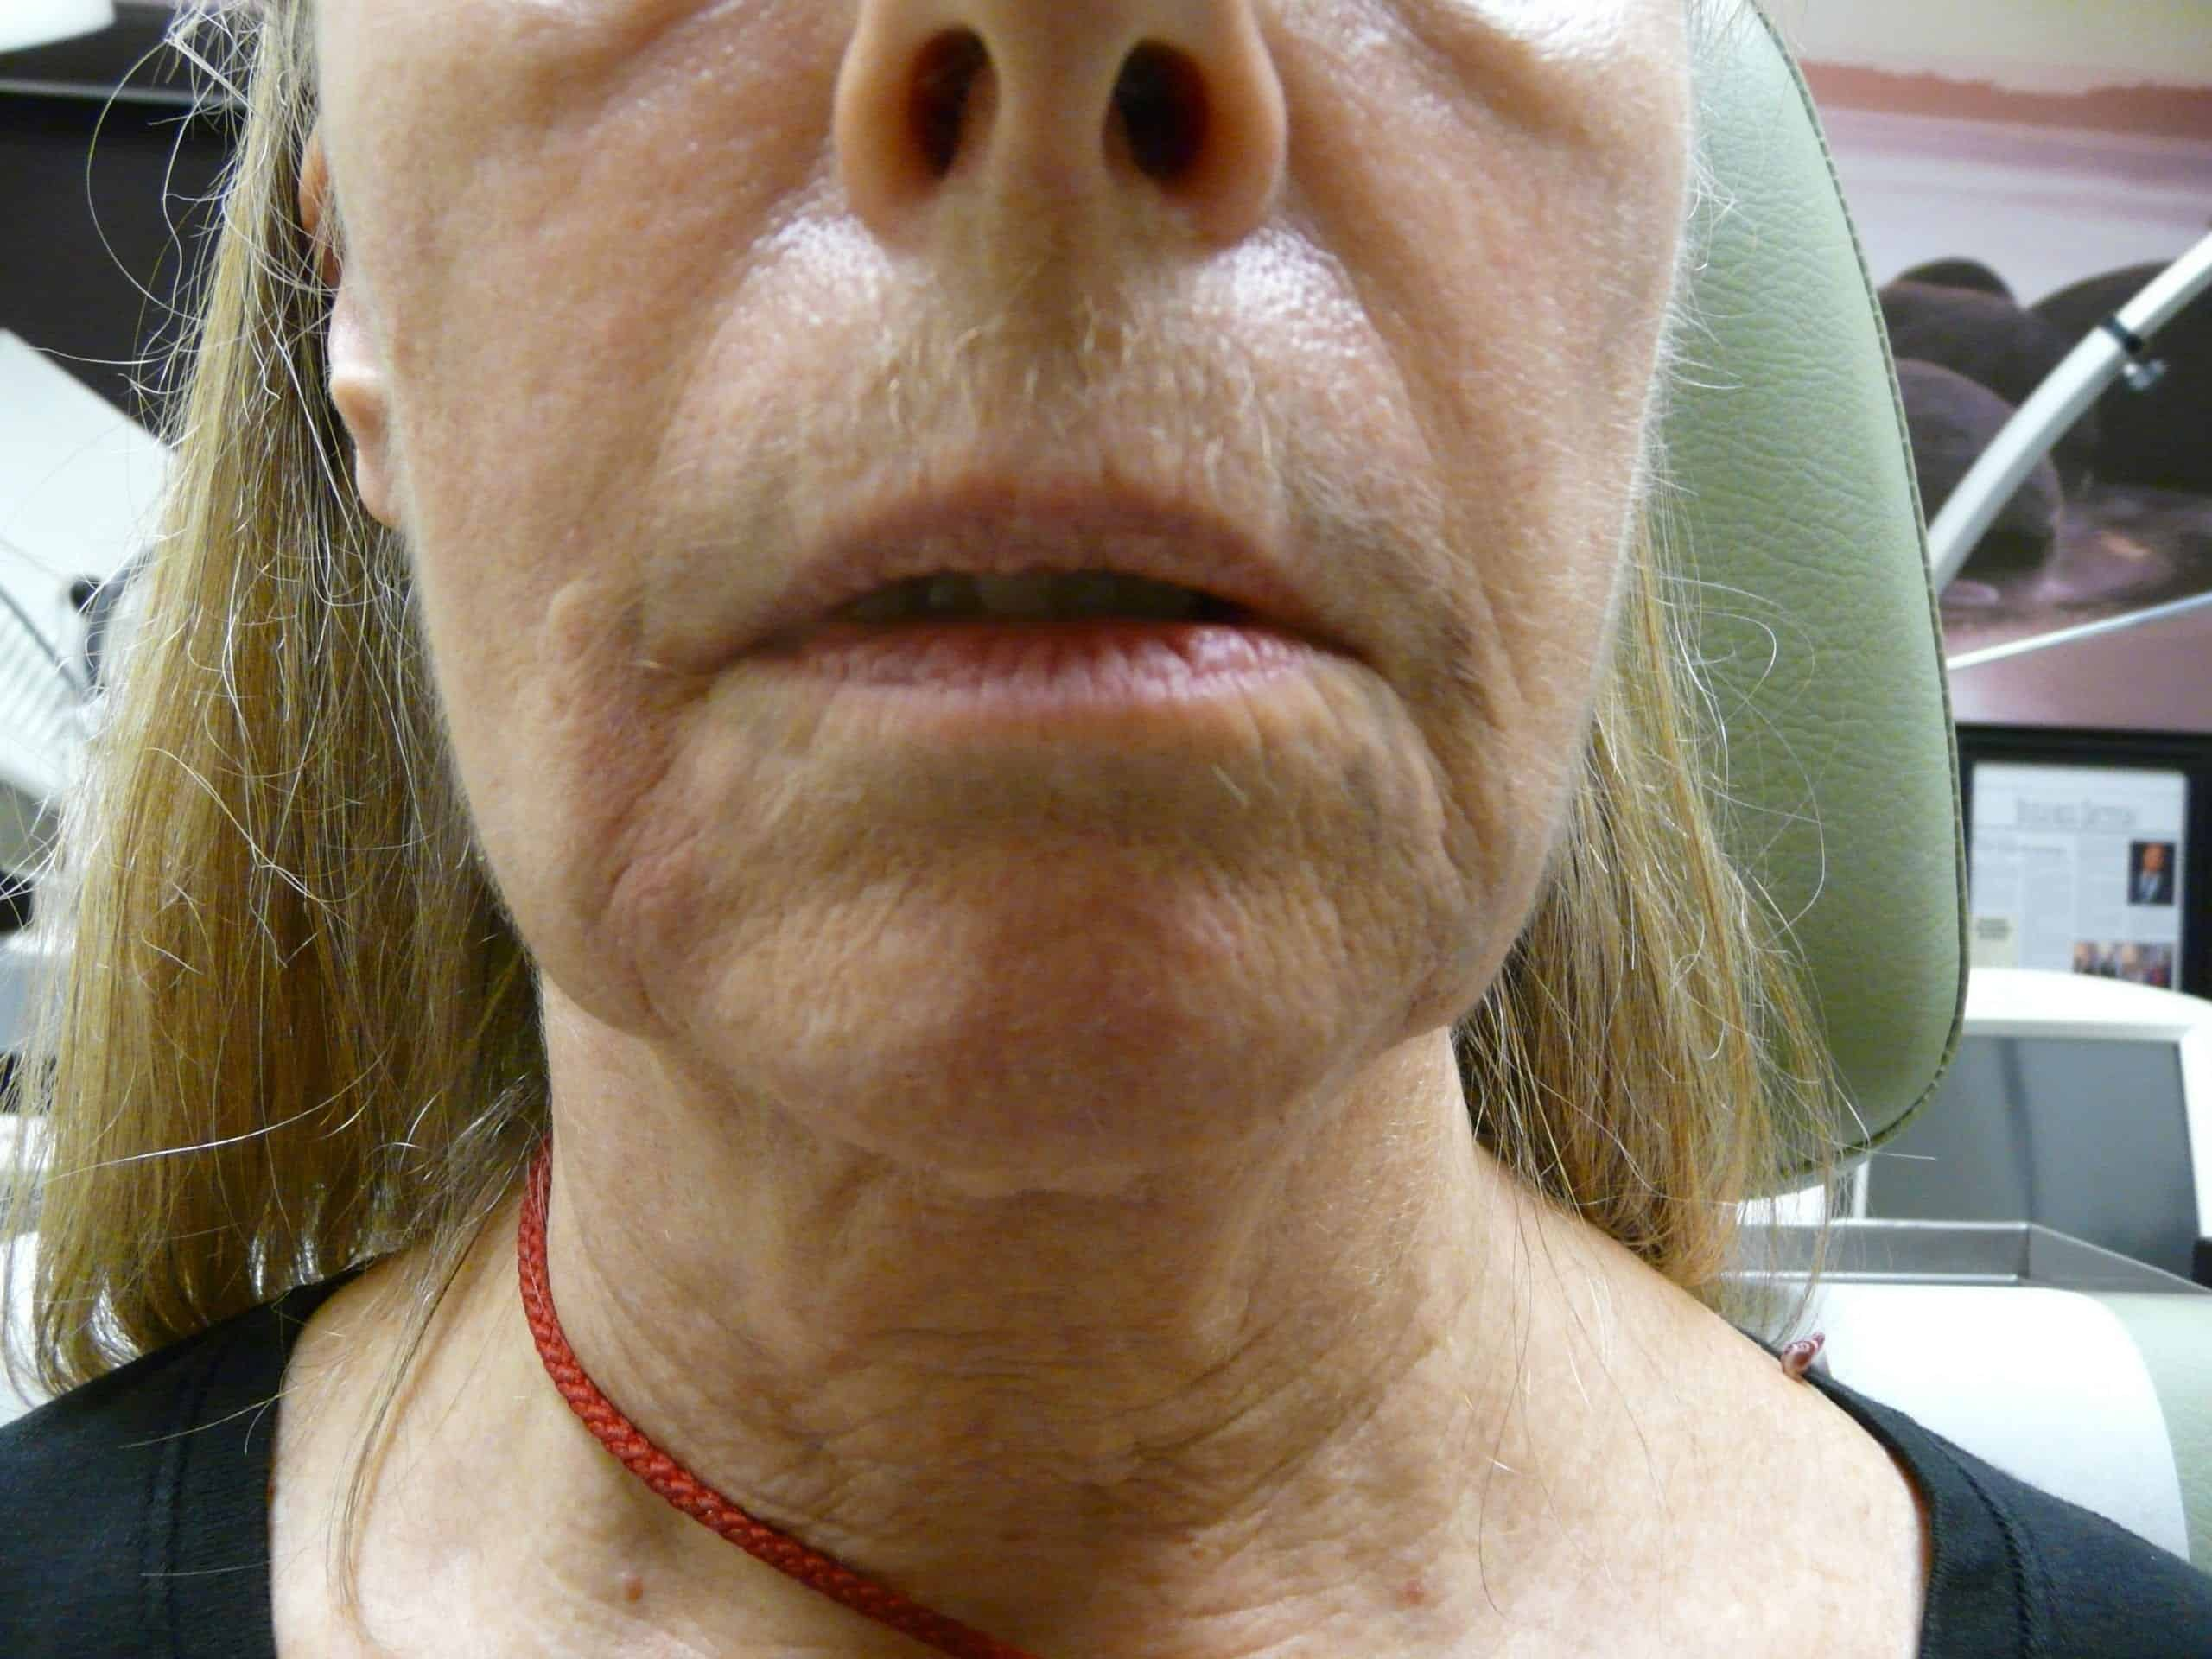 Before non surgical jowllift in beverly hills patient using dermal fillers.